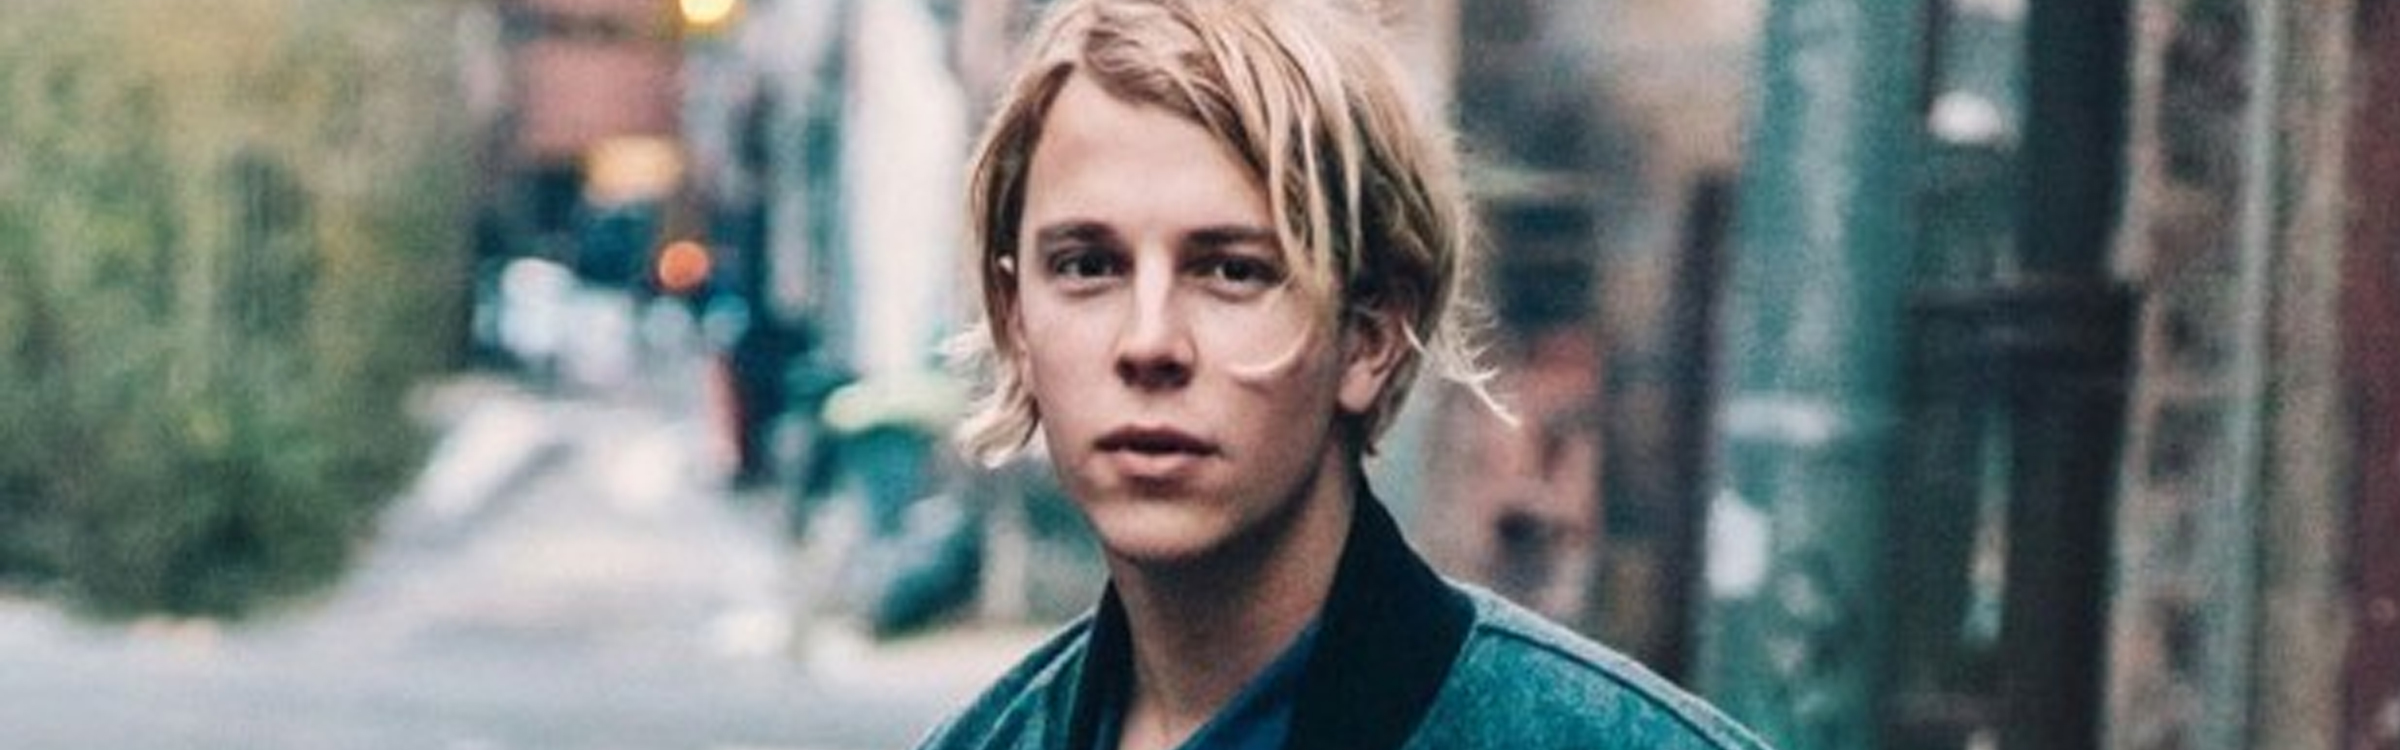 Tom odell header